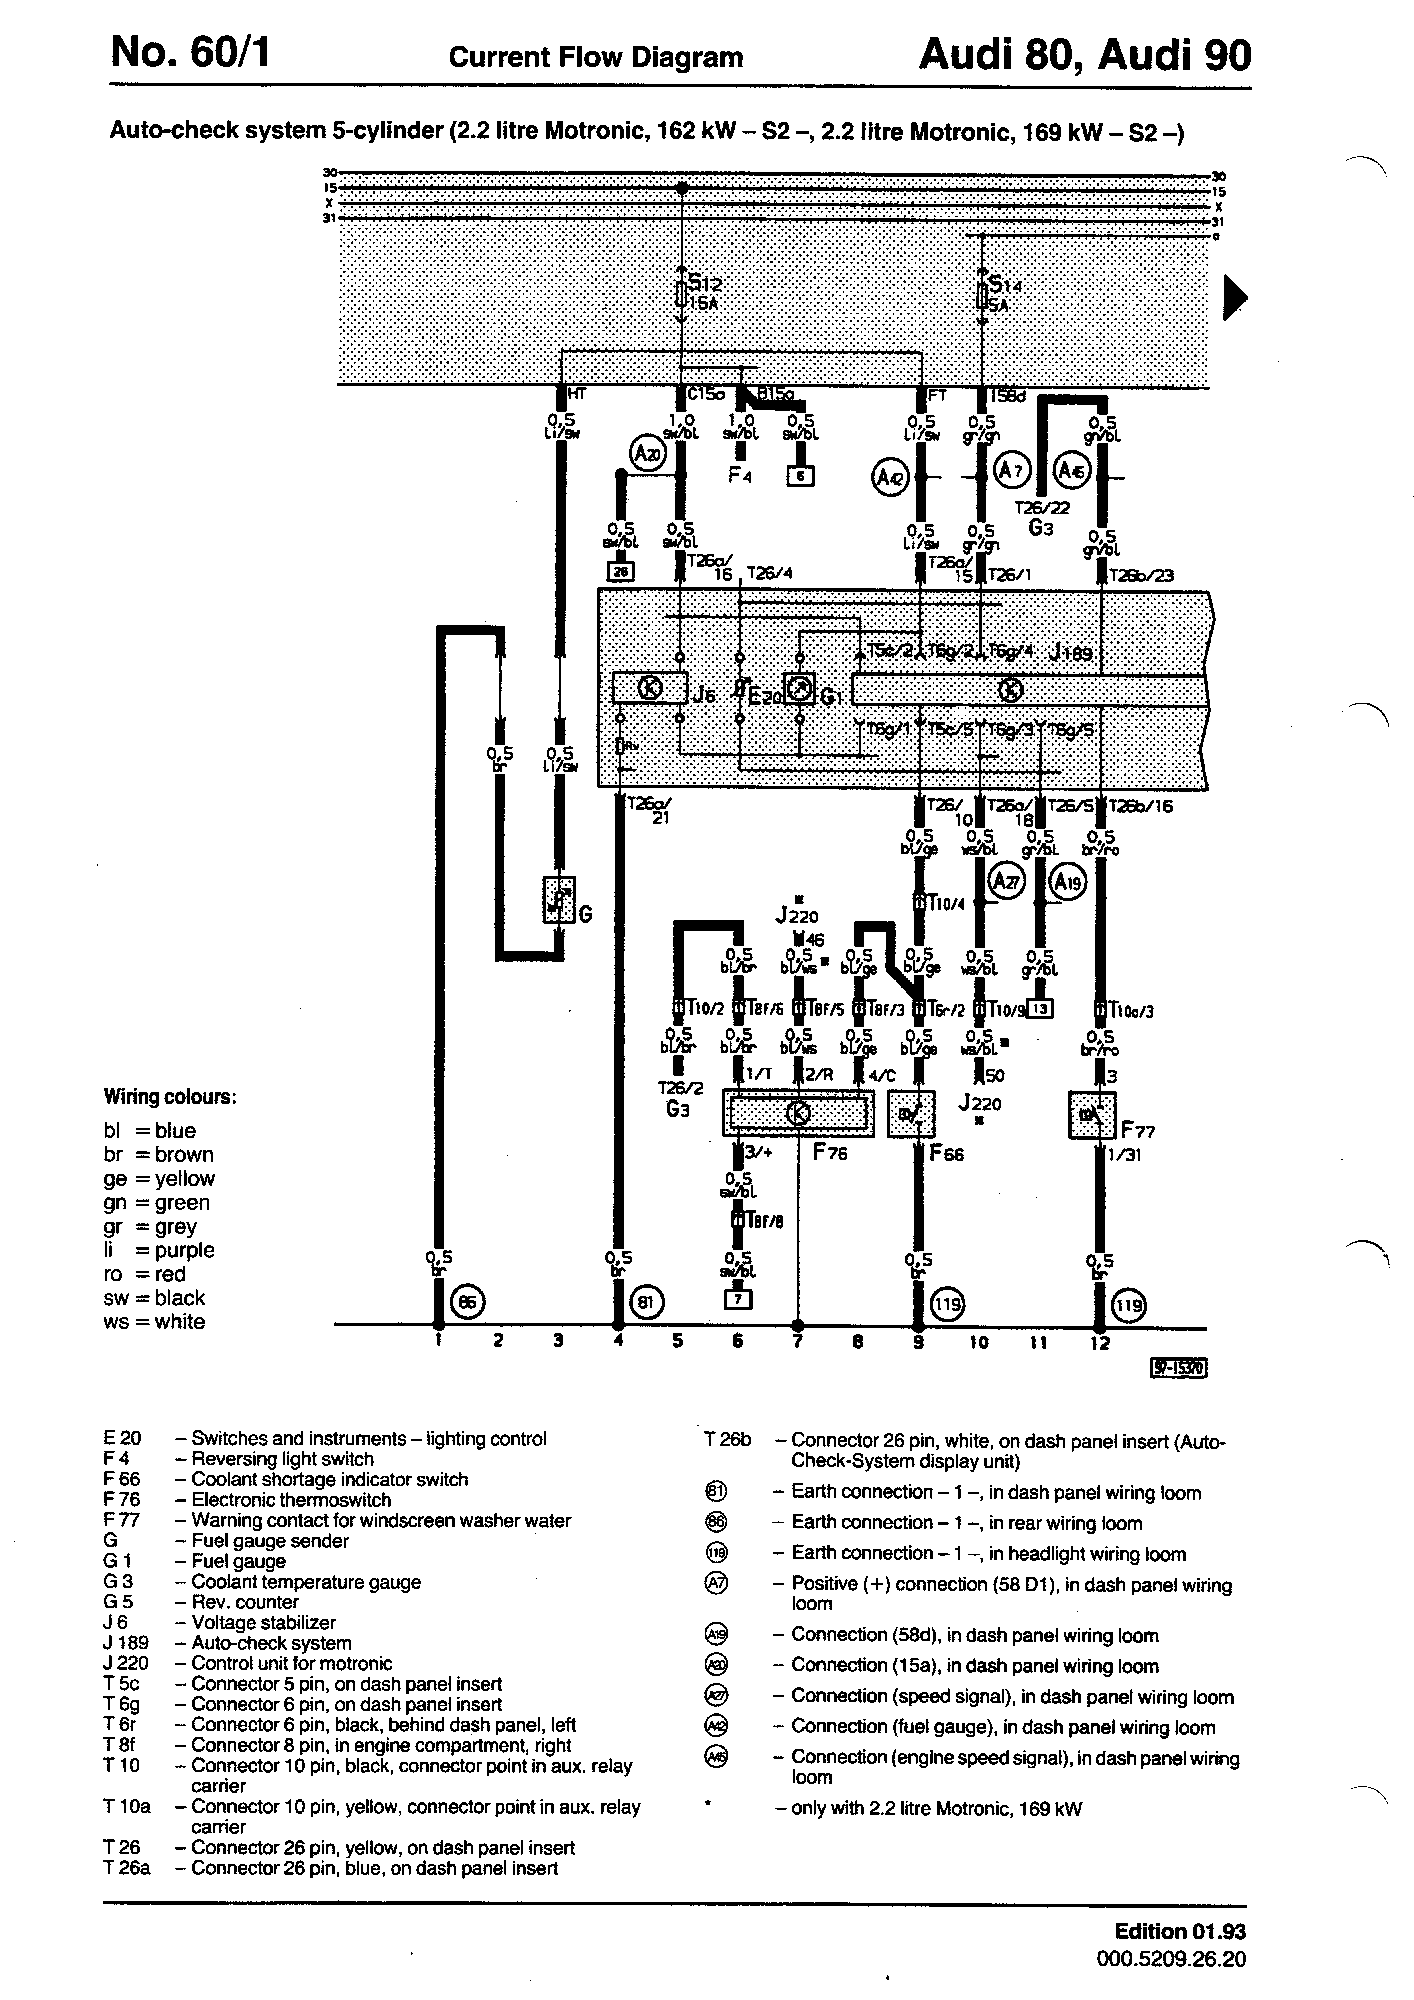 wiring diagrams component lookup rh s2 audi co uk Audi Q7 Fuse Diagram audi s2 3b wiring diagram